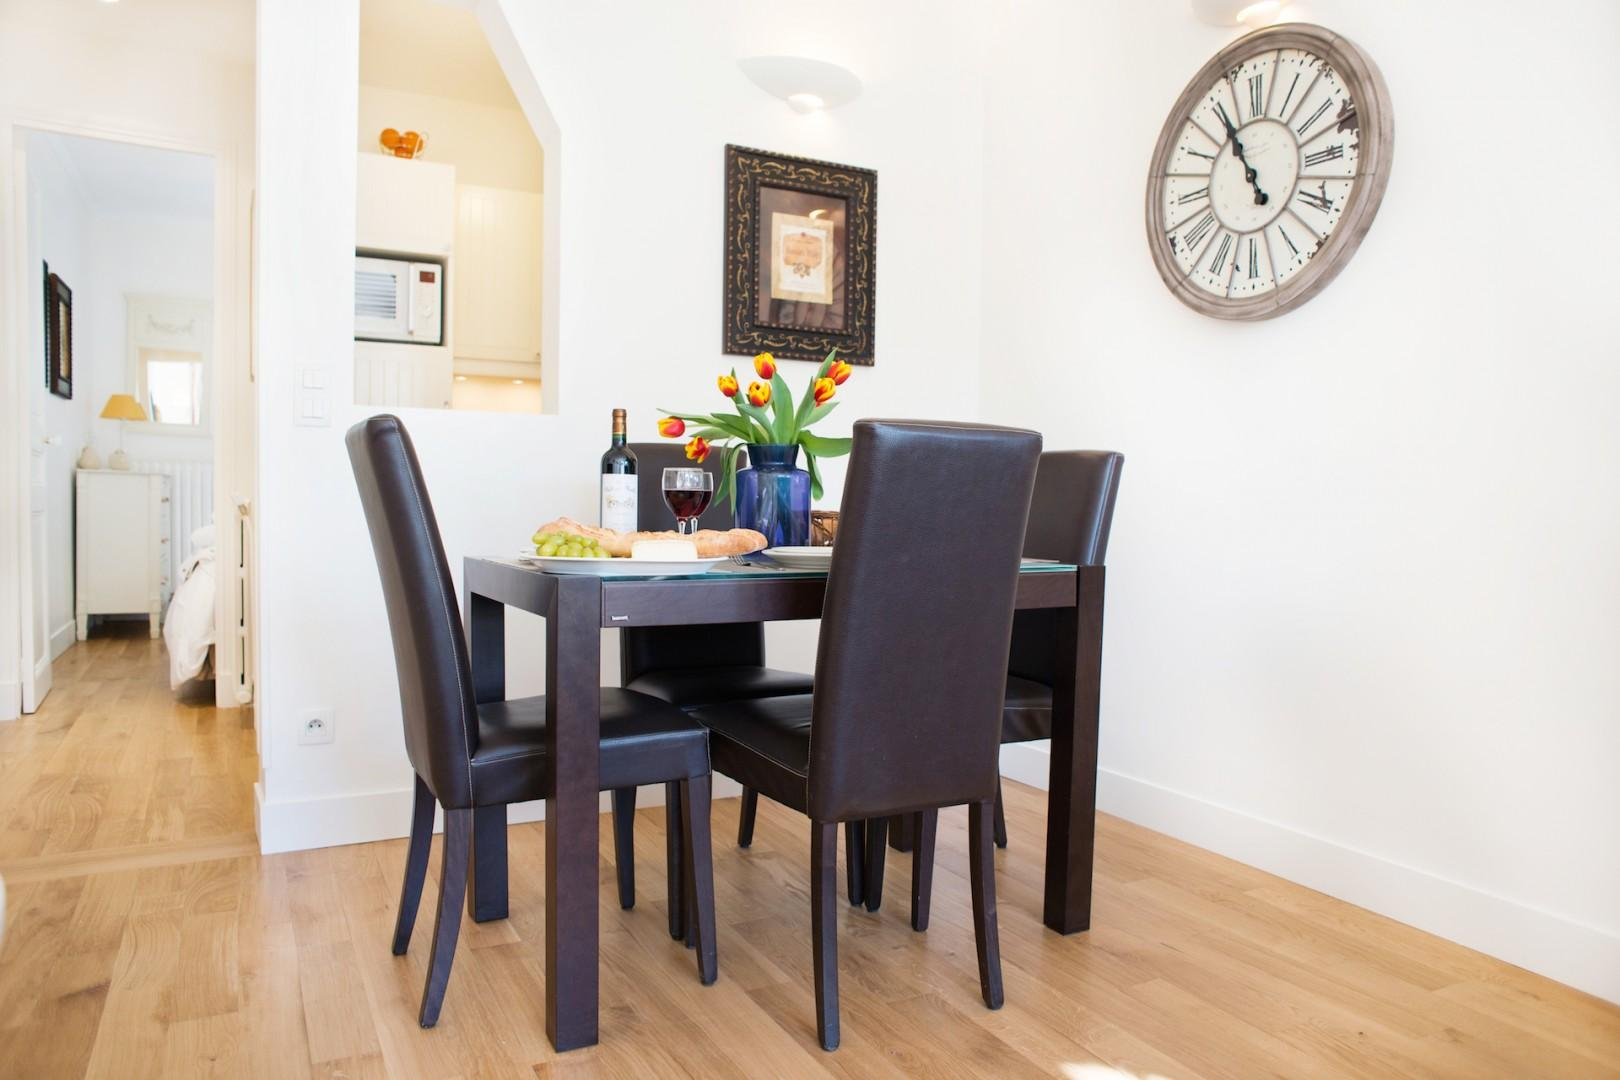 Enjoy French meals in the comfort of your home.